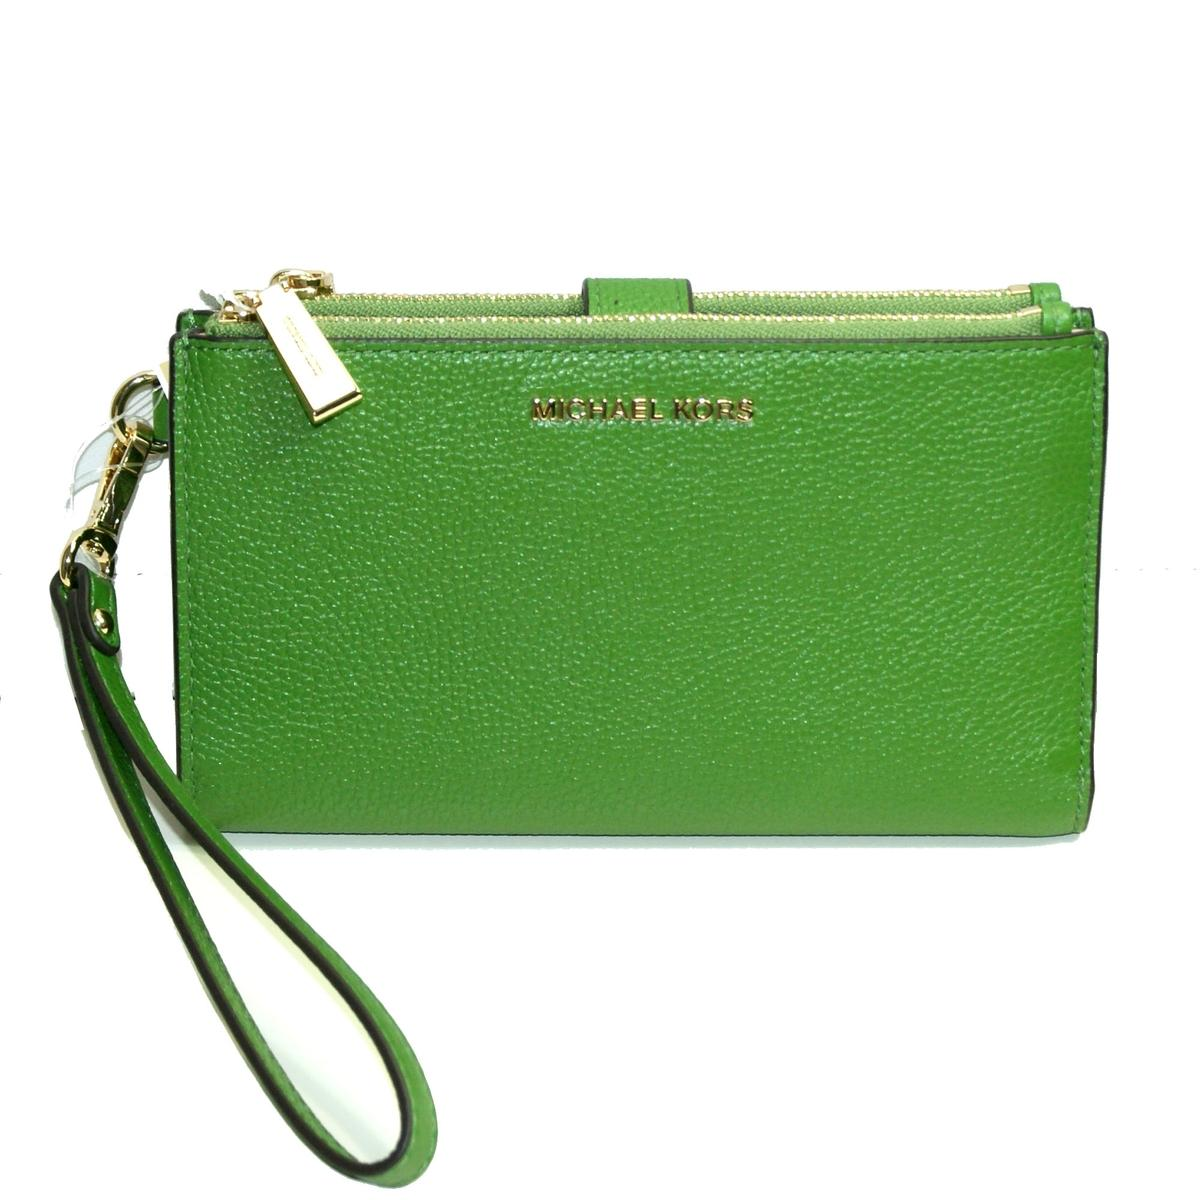 871d8d90b6e923 Home · Michael Kors · Double Zip Leather Clutch/ Wristlet True Green. CLICK  THUMBNAIL TO ZOOM. Found ...